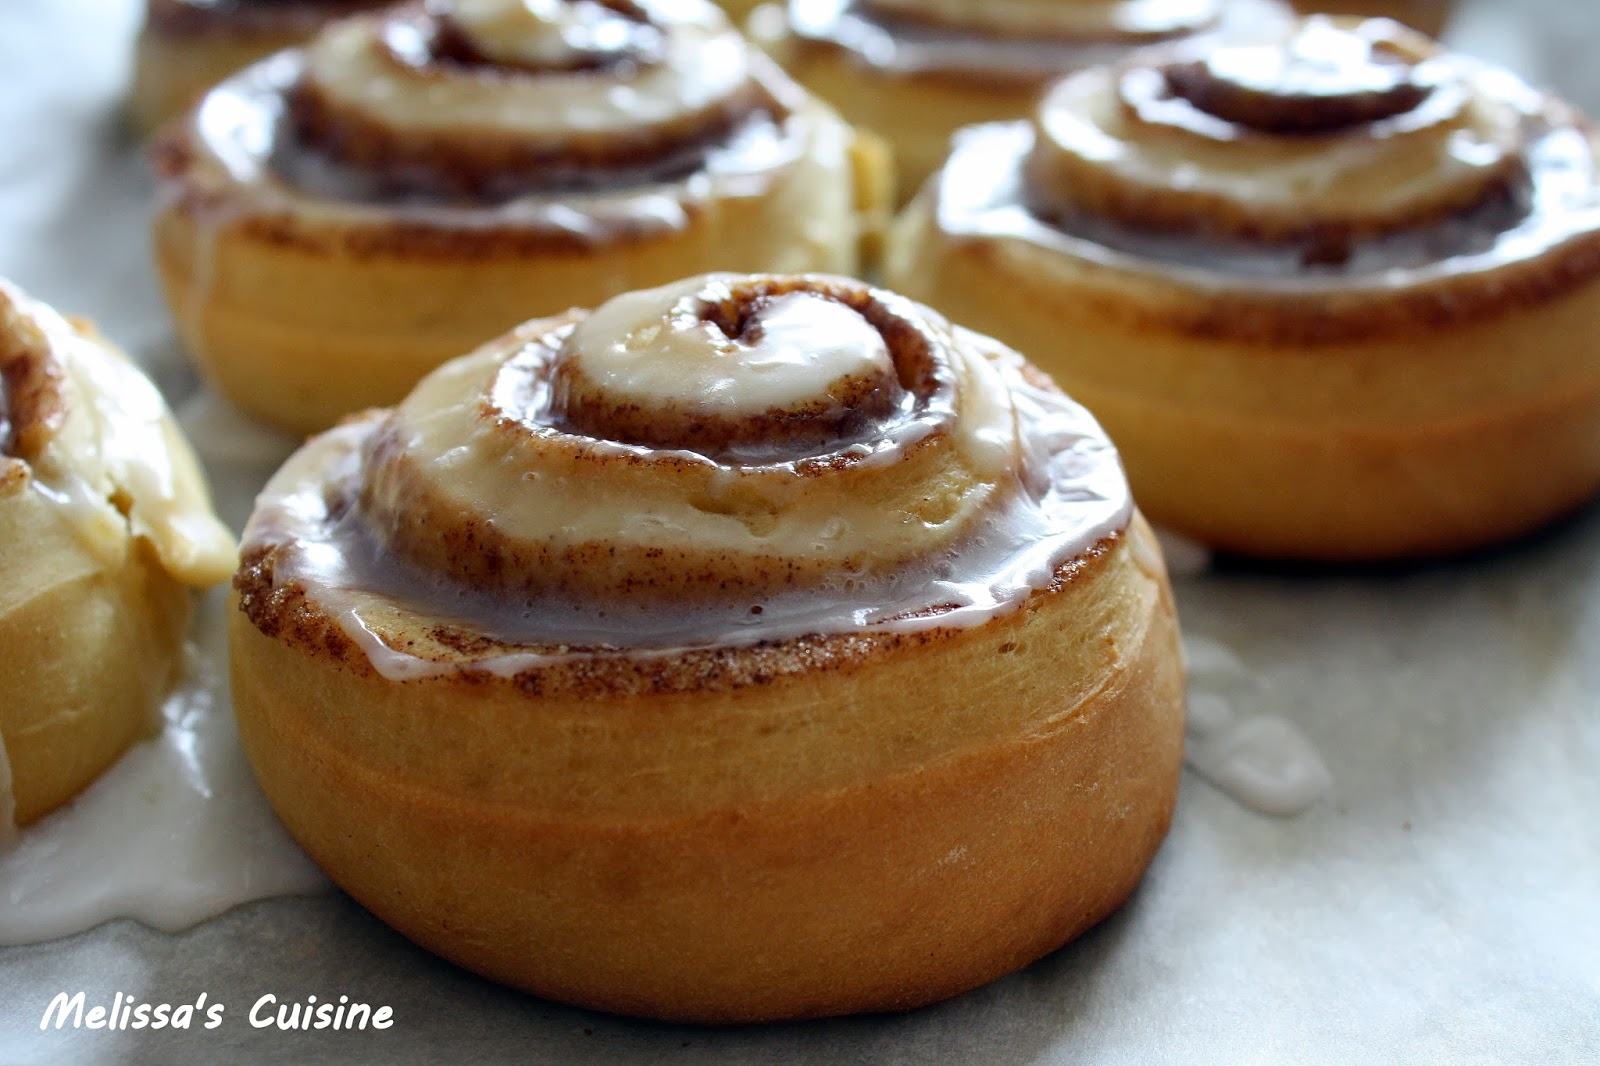 Melissa's Cuisine: Light and Fluffy Cinnamon Rolls